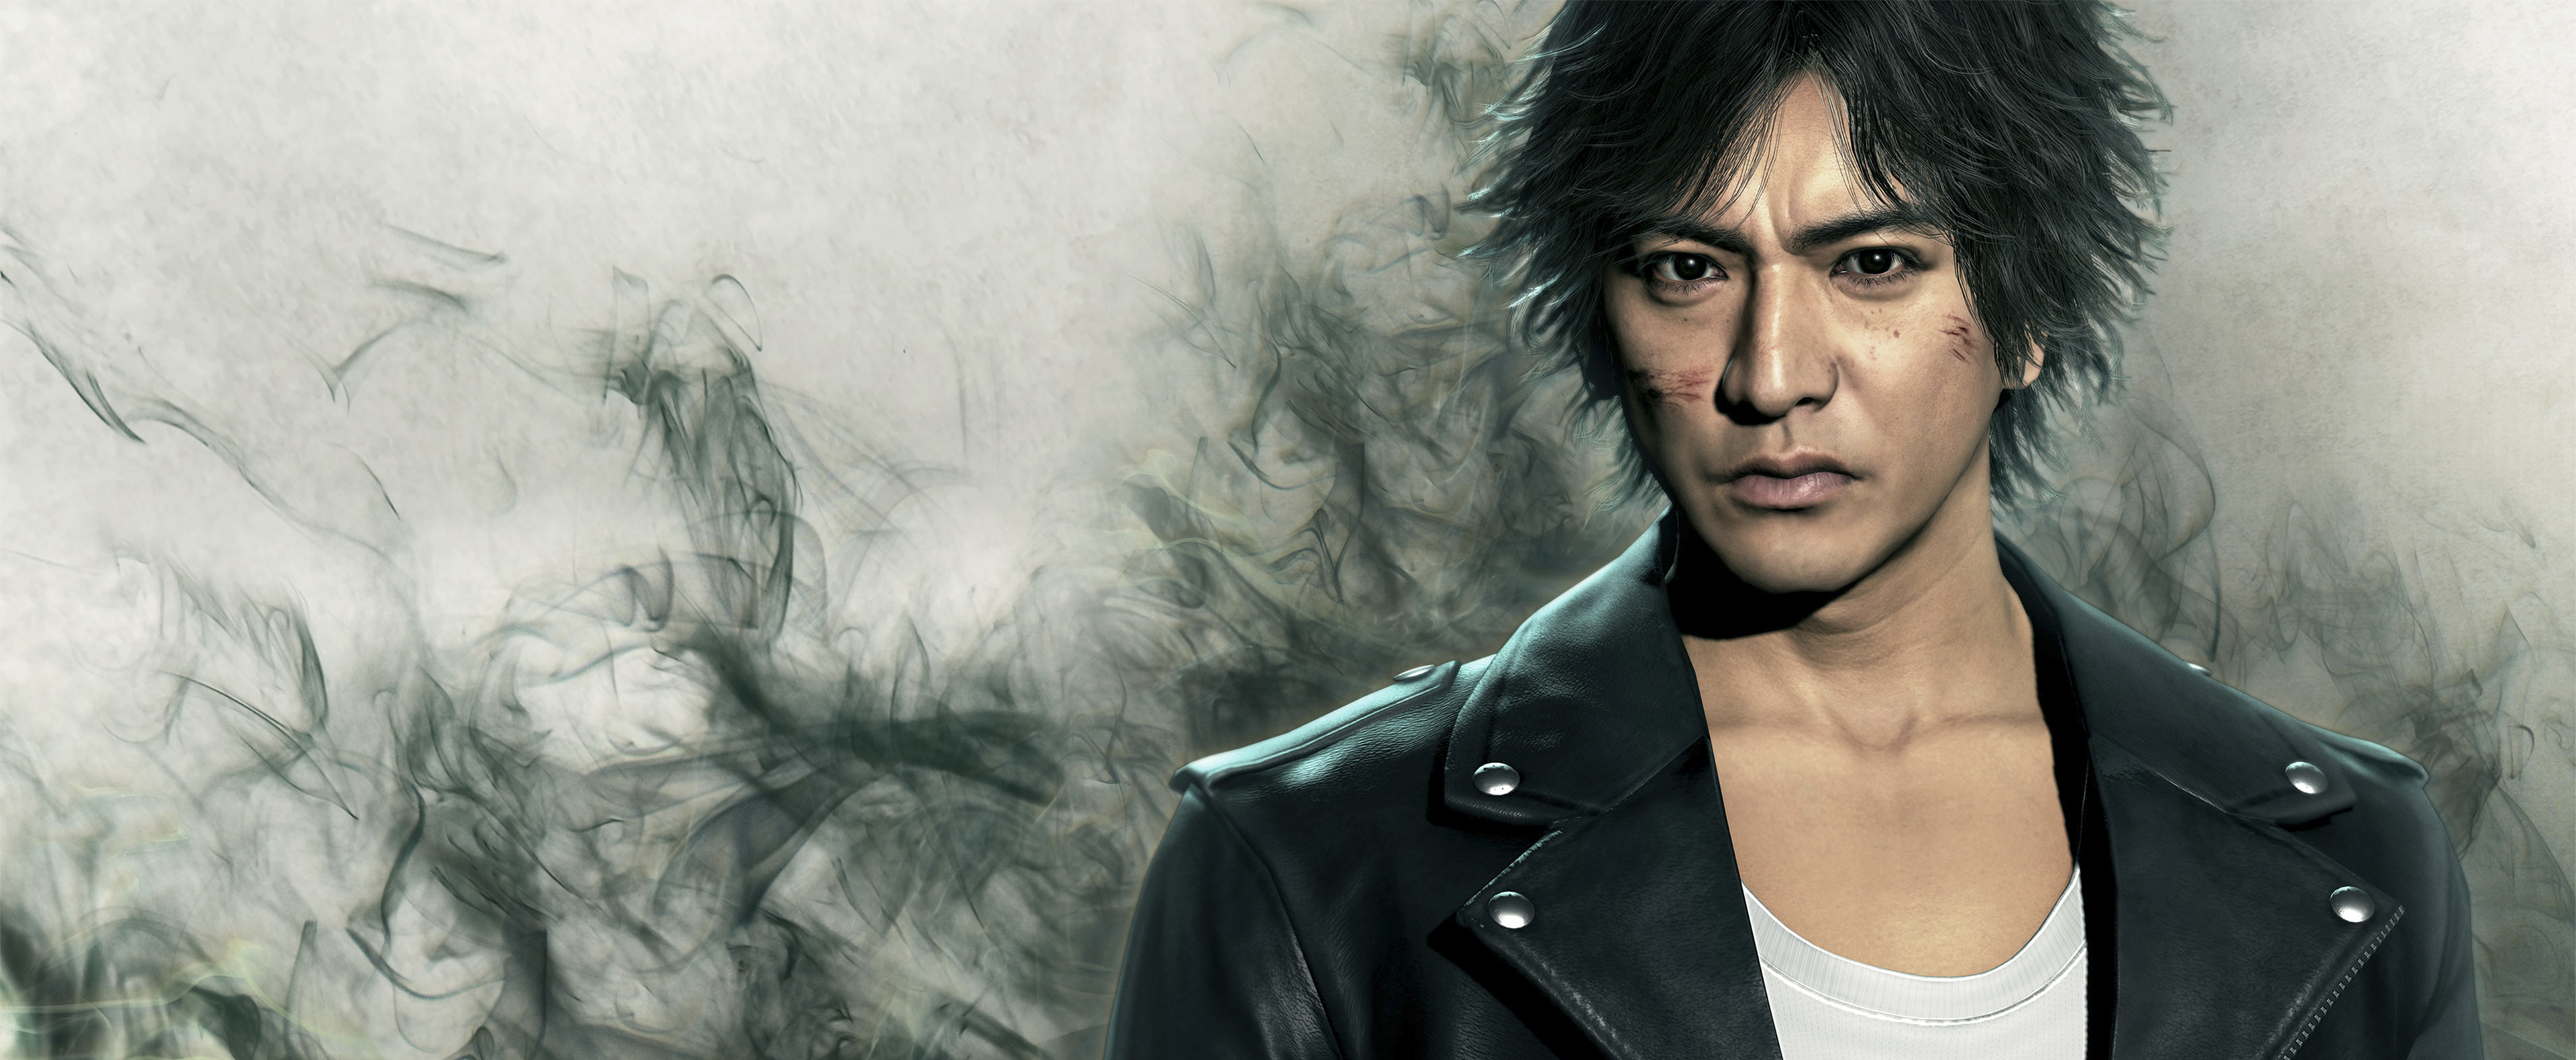 Judgment - Key Art